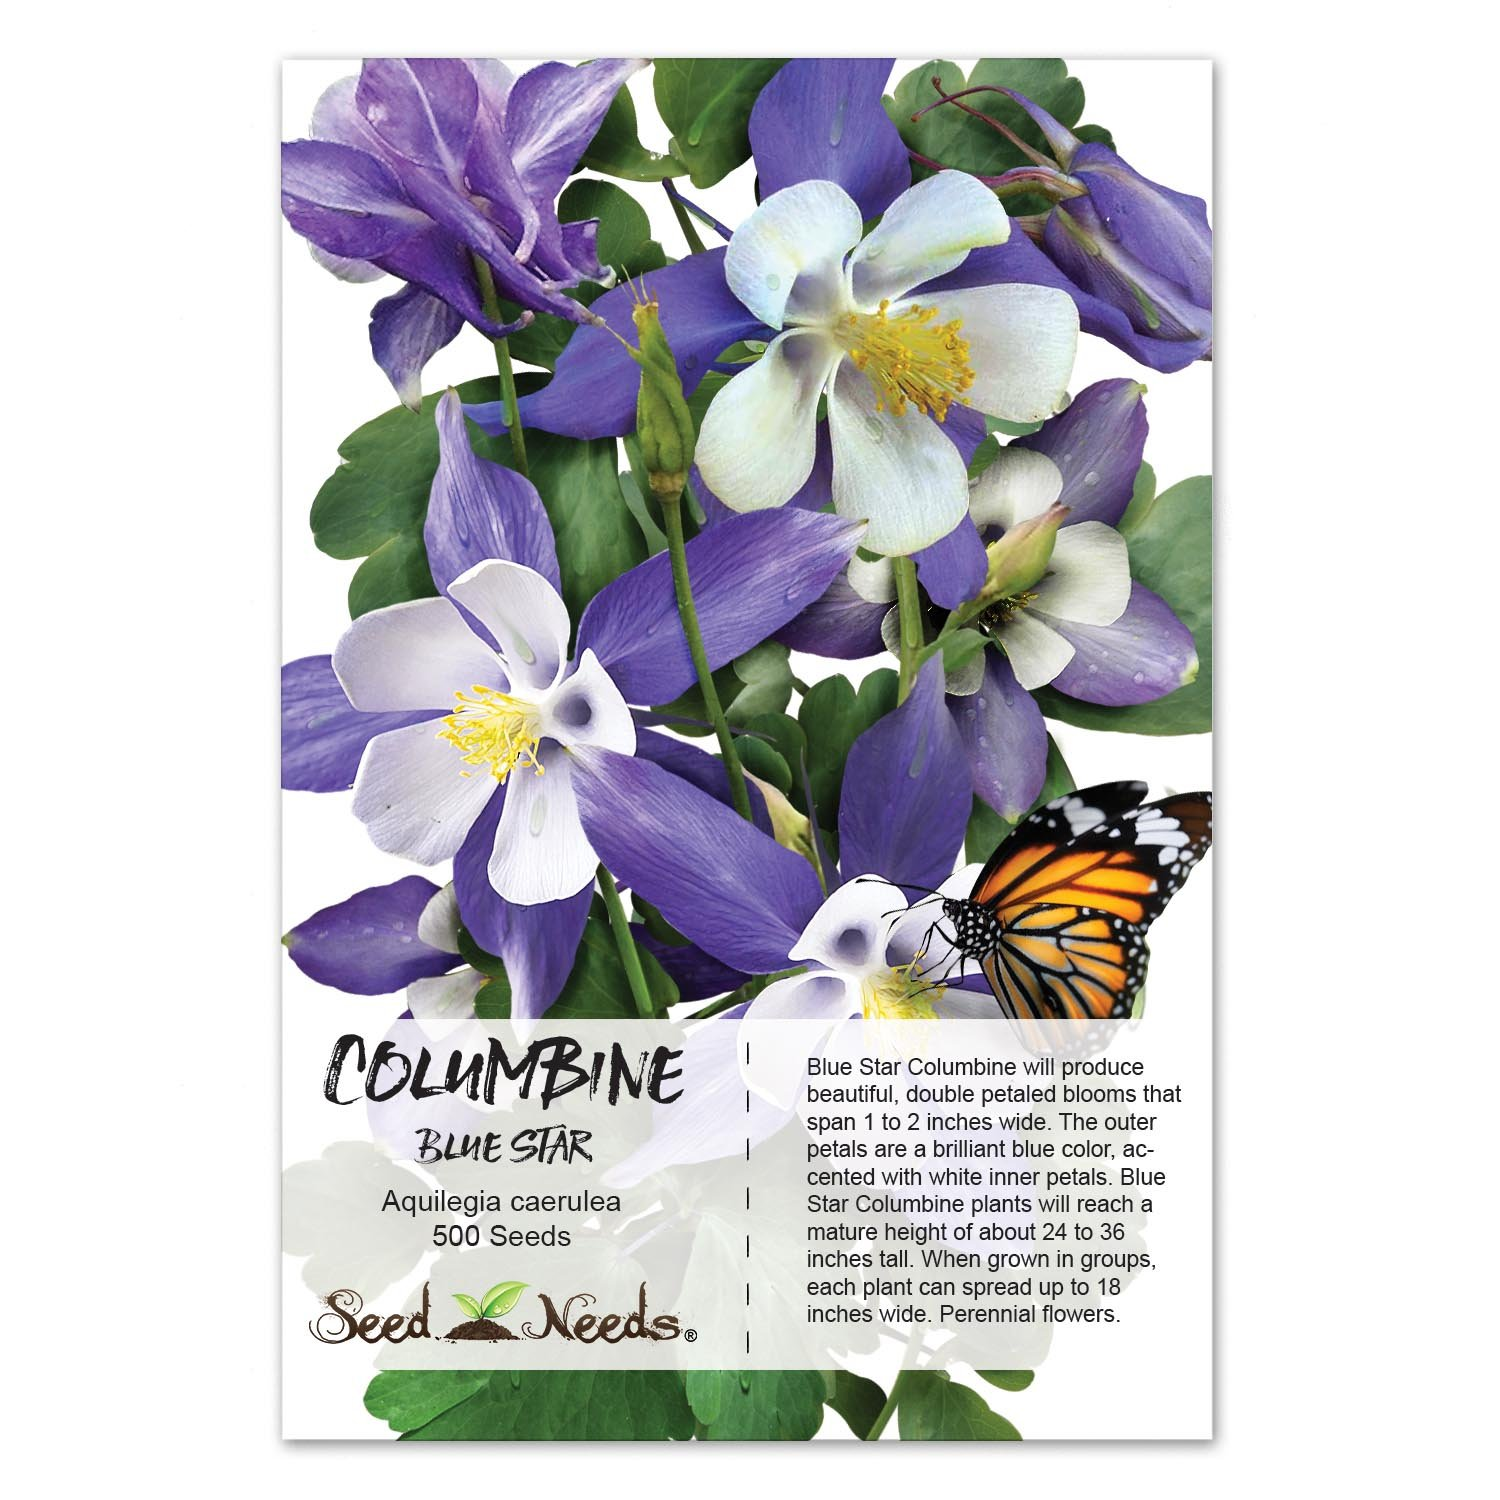 Amazon package of 500 seeds blue star columbine aquilegia amazon package of 500 seeds blue star columbine aquilegia caerulea non gmo seeds by seed needs columbine plants garden outdoor izmirmasajfo